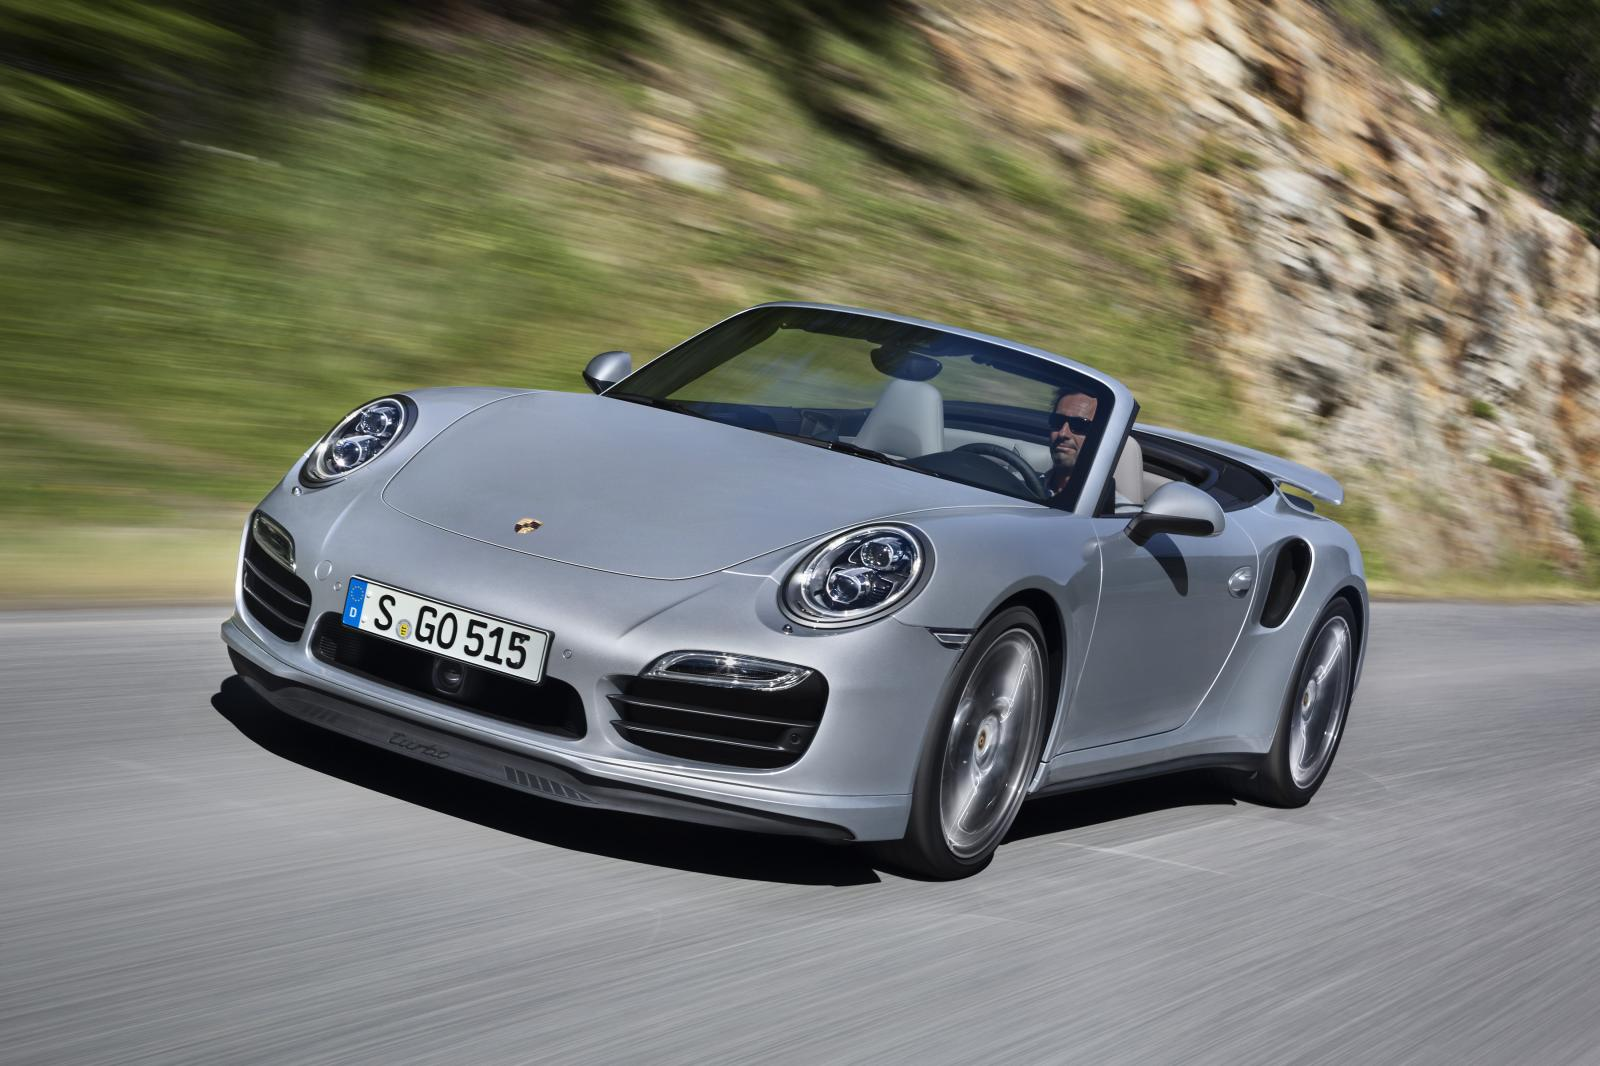 2014 porsche 911 turbo turbo s cabriolet revealed. Black Bedroom Furniture Sets. Home Design Ideas